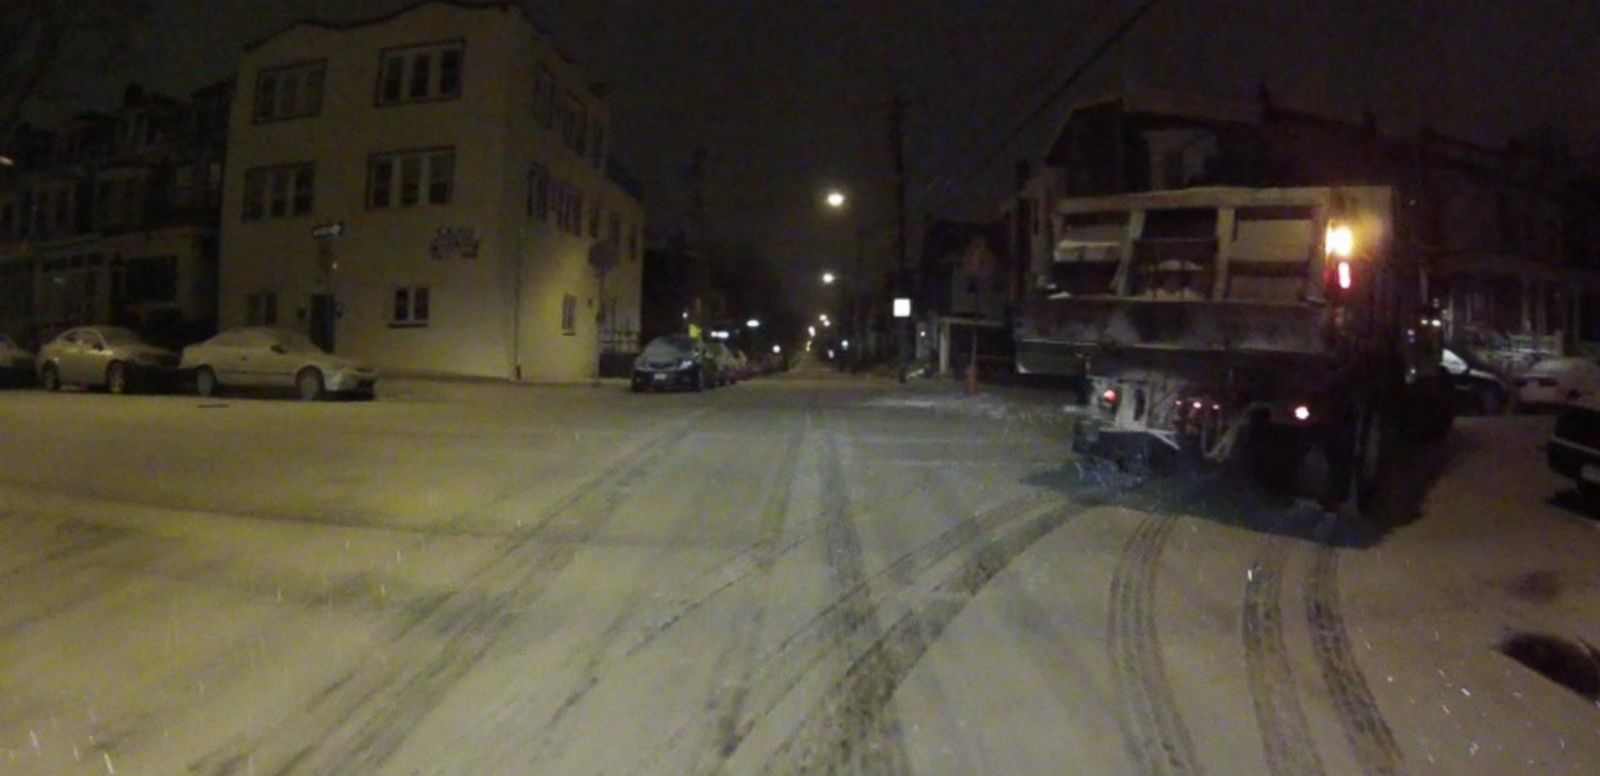 VIDEO: Blizzard Dumps Only 2 Inches on Philadelphia